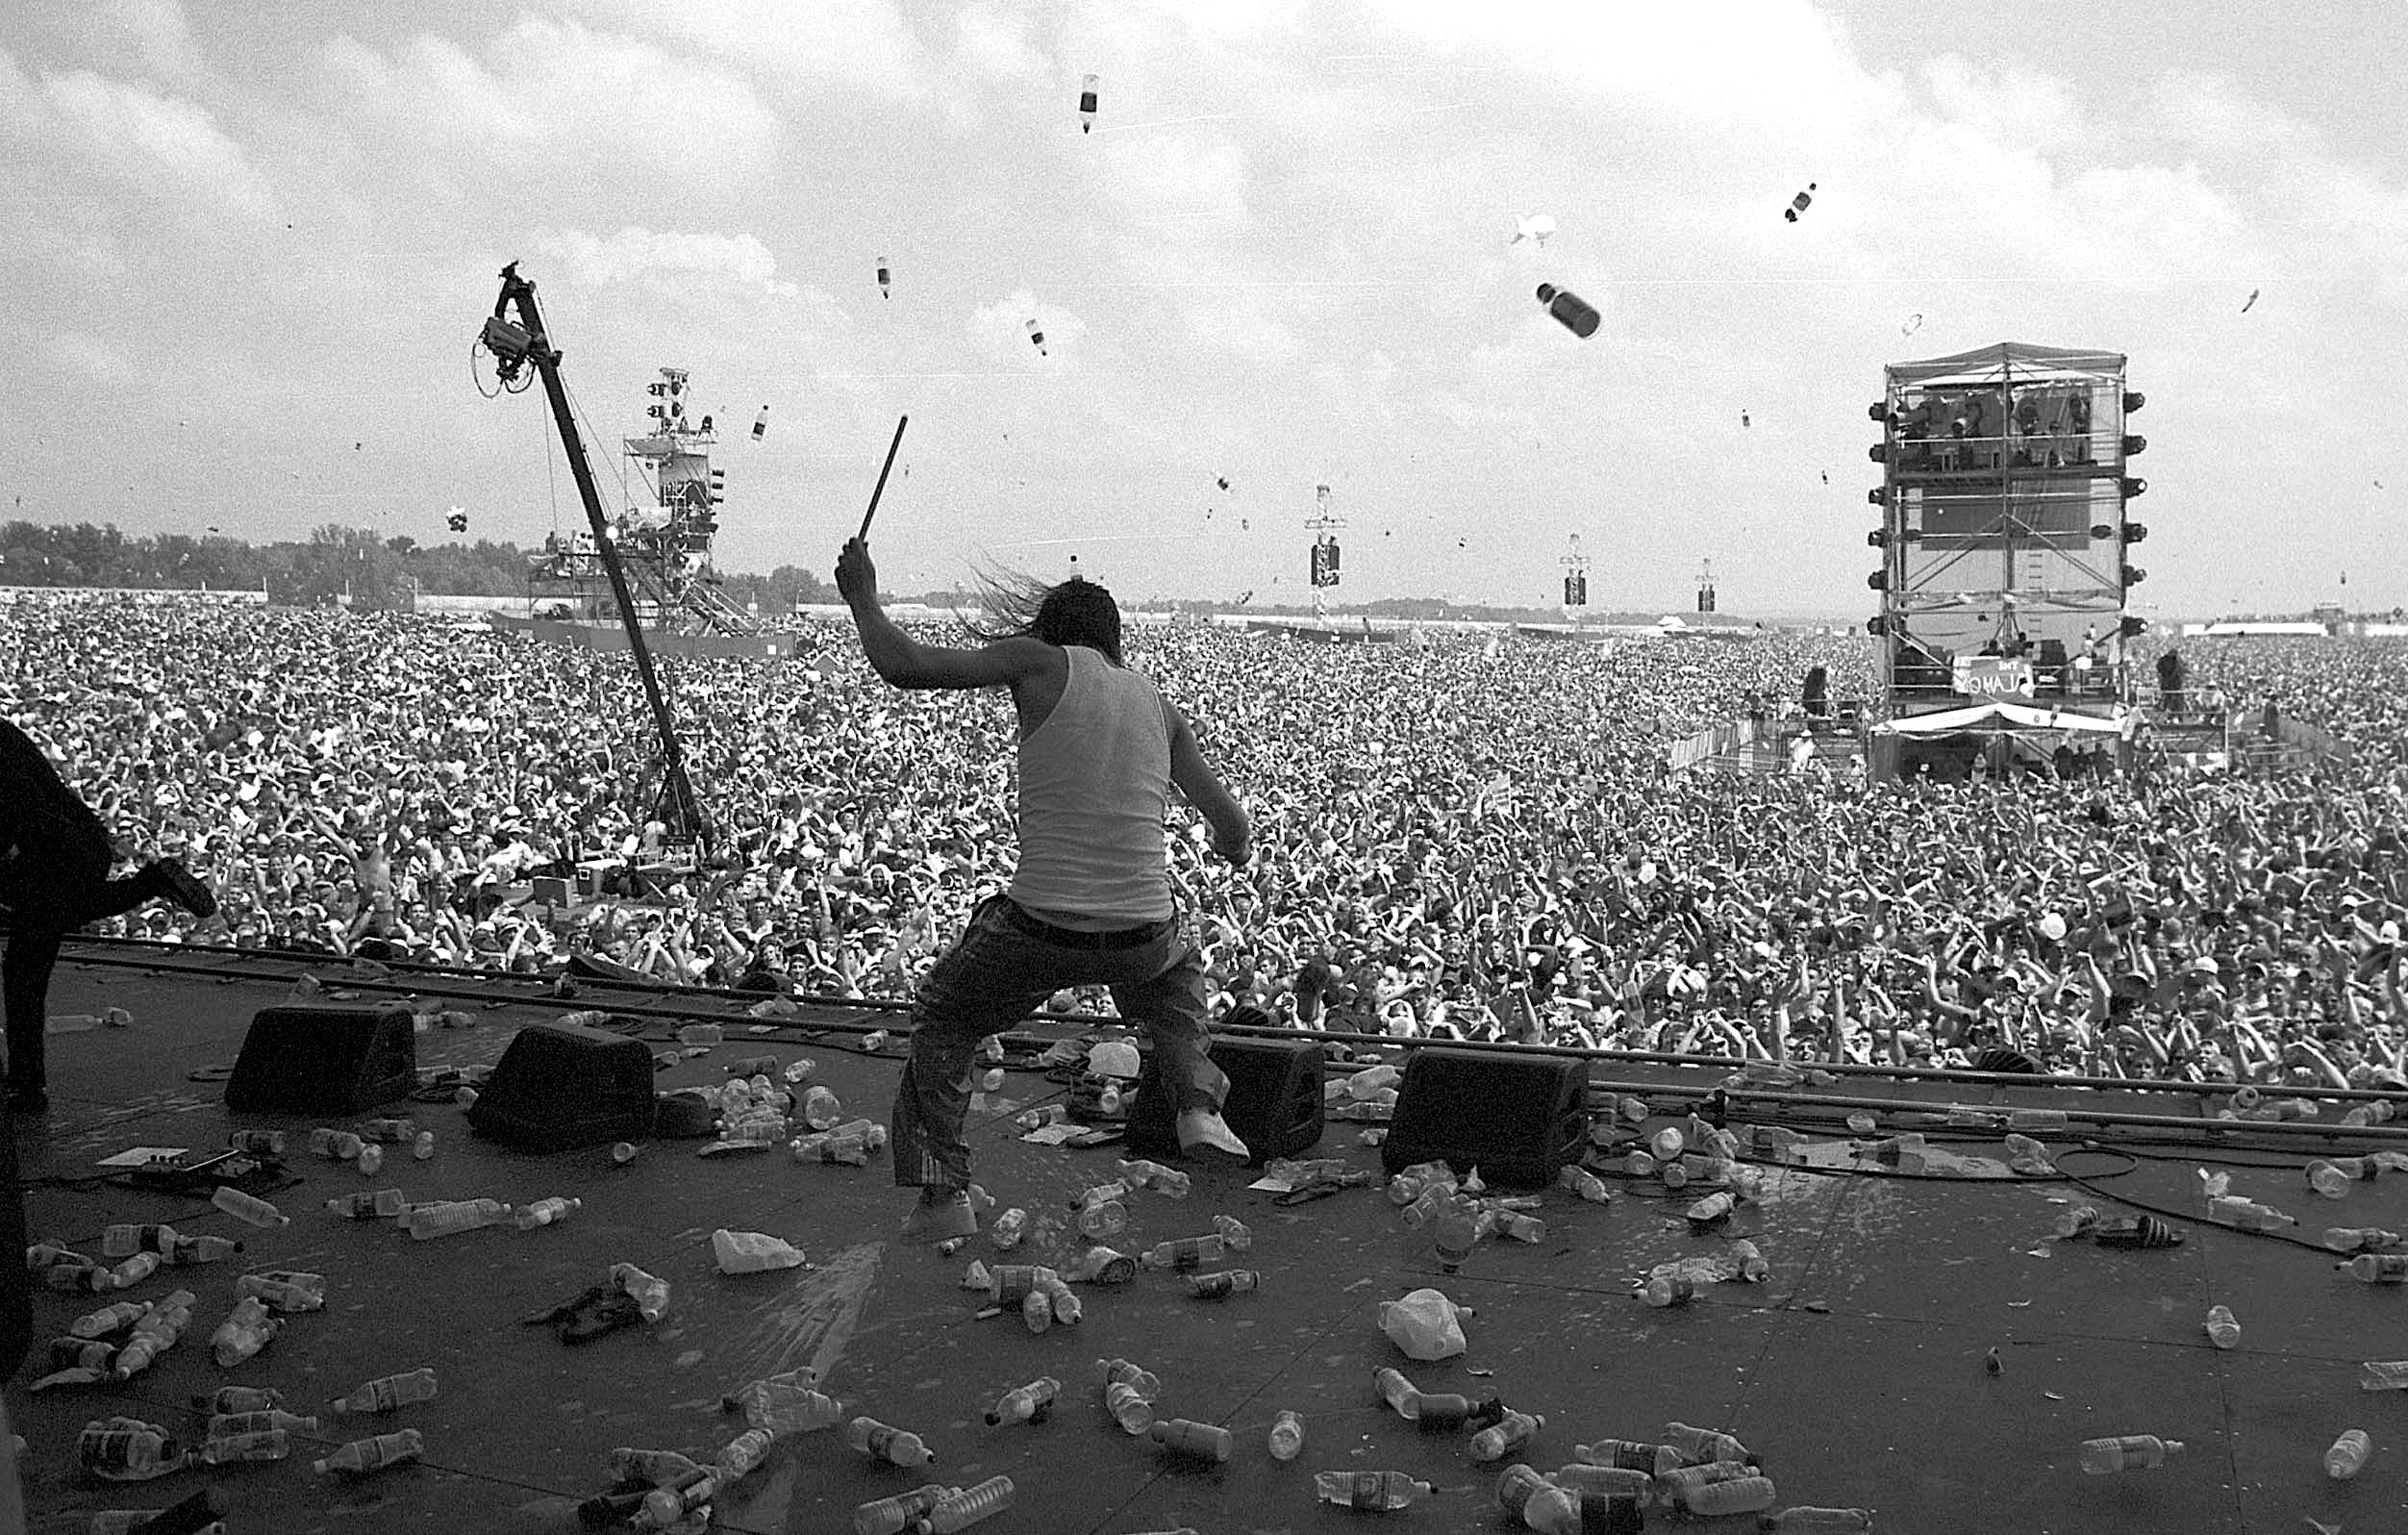 I Was at Woodstock '99, and Yes, Everyone Was That Angry